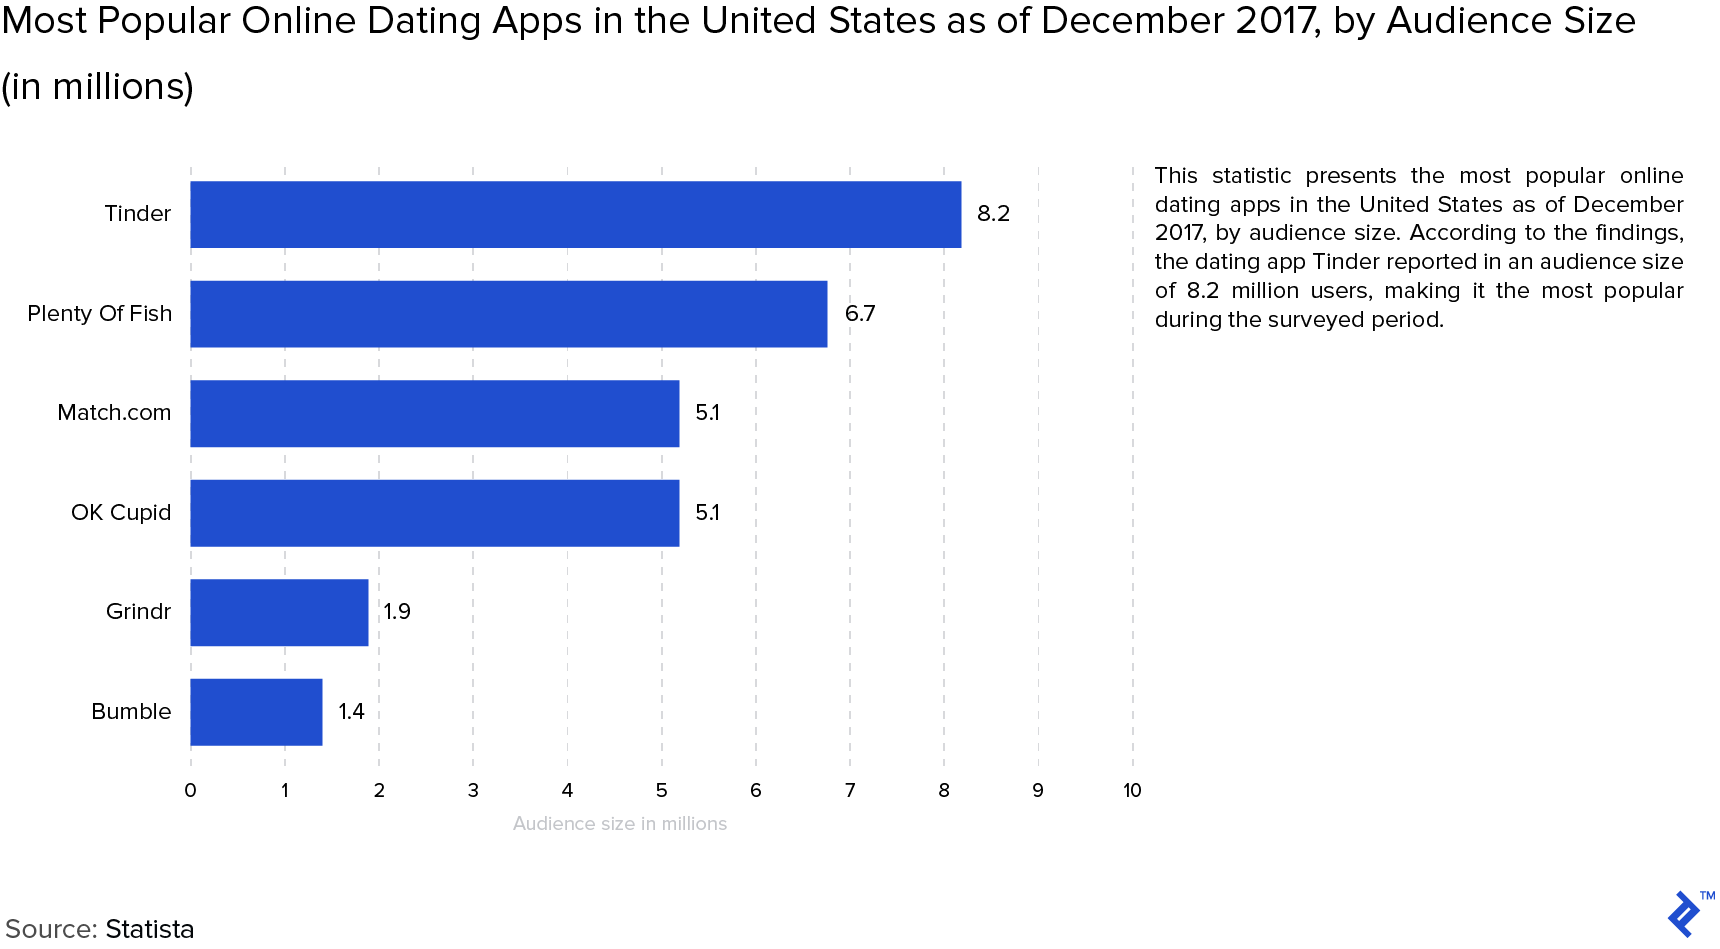 Graph: Most Popular Online Dating Apps in the United States as of December 2017